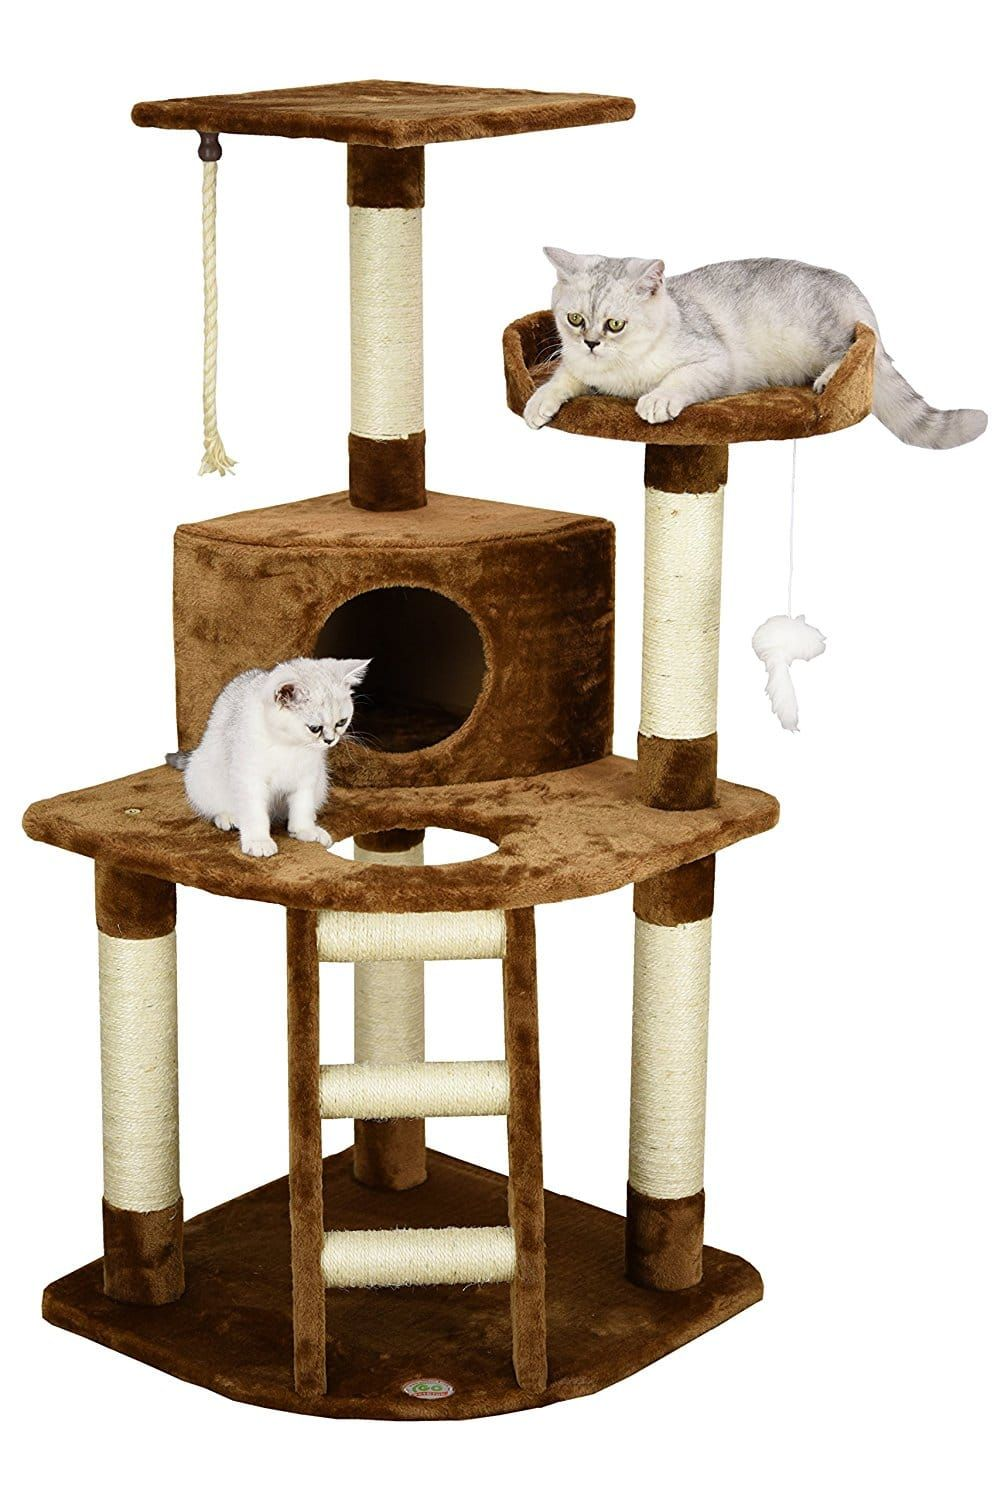 Top 10 Best Cat Climbers In 2020 Reviews Casa Arbol Gato